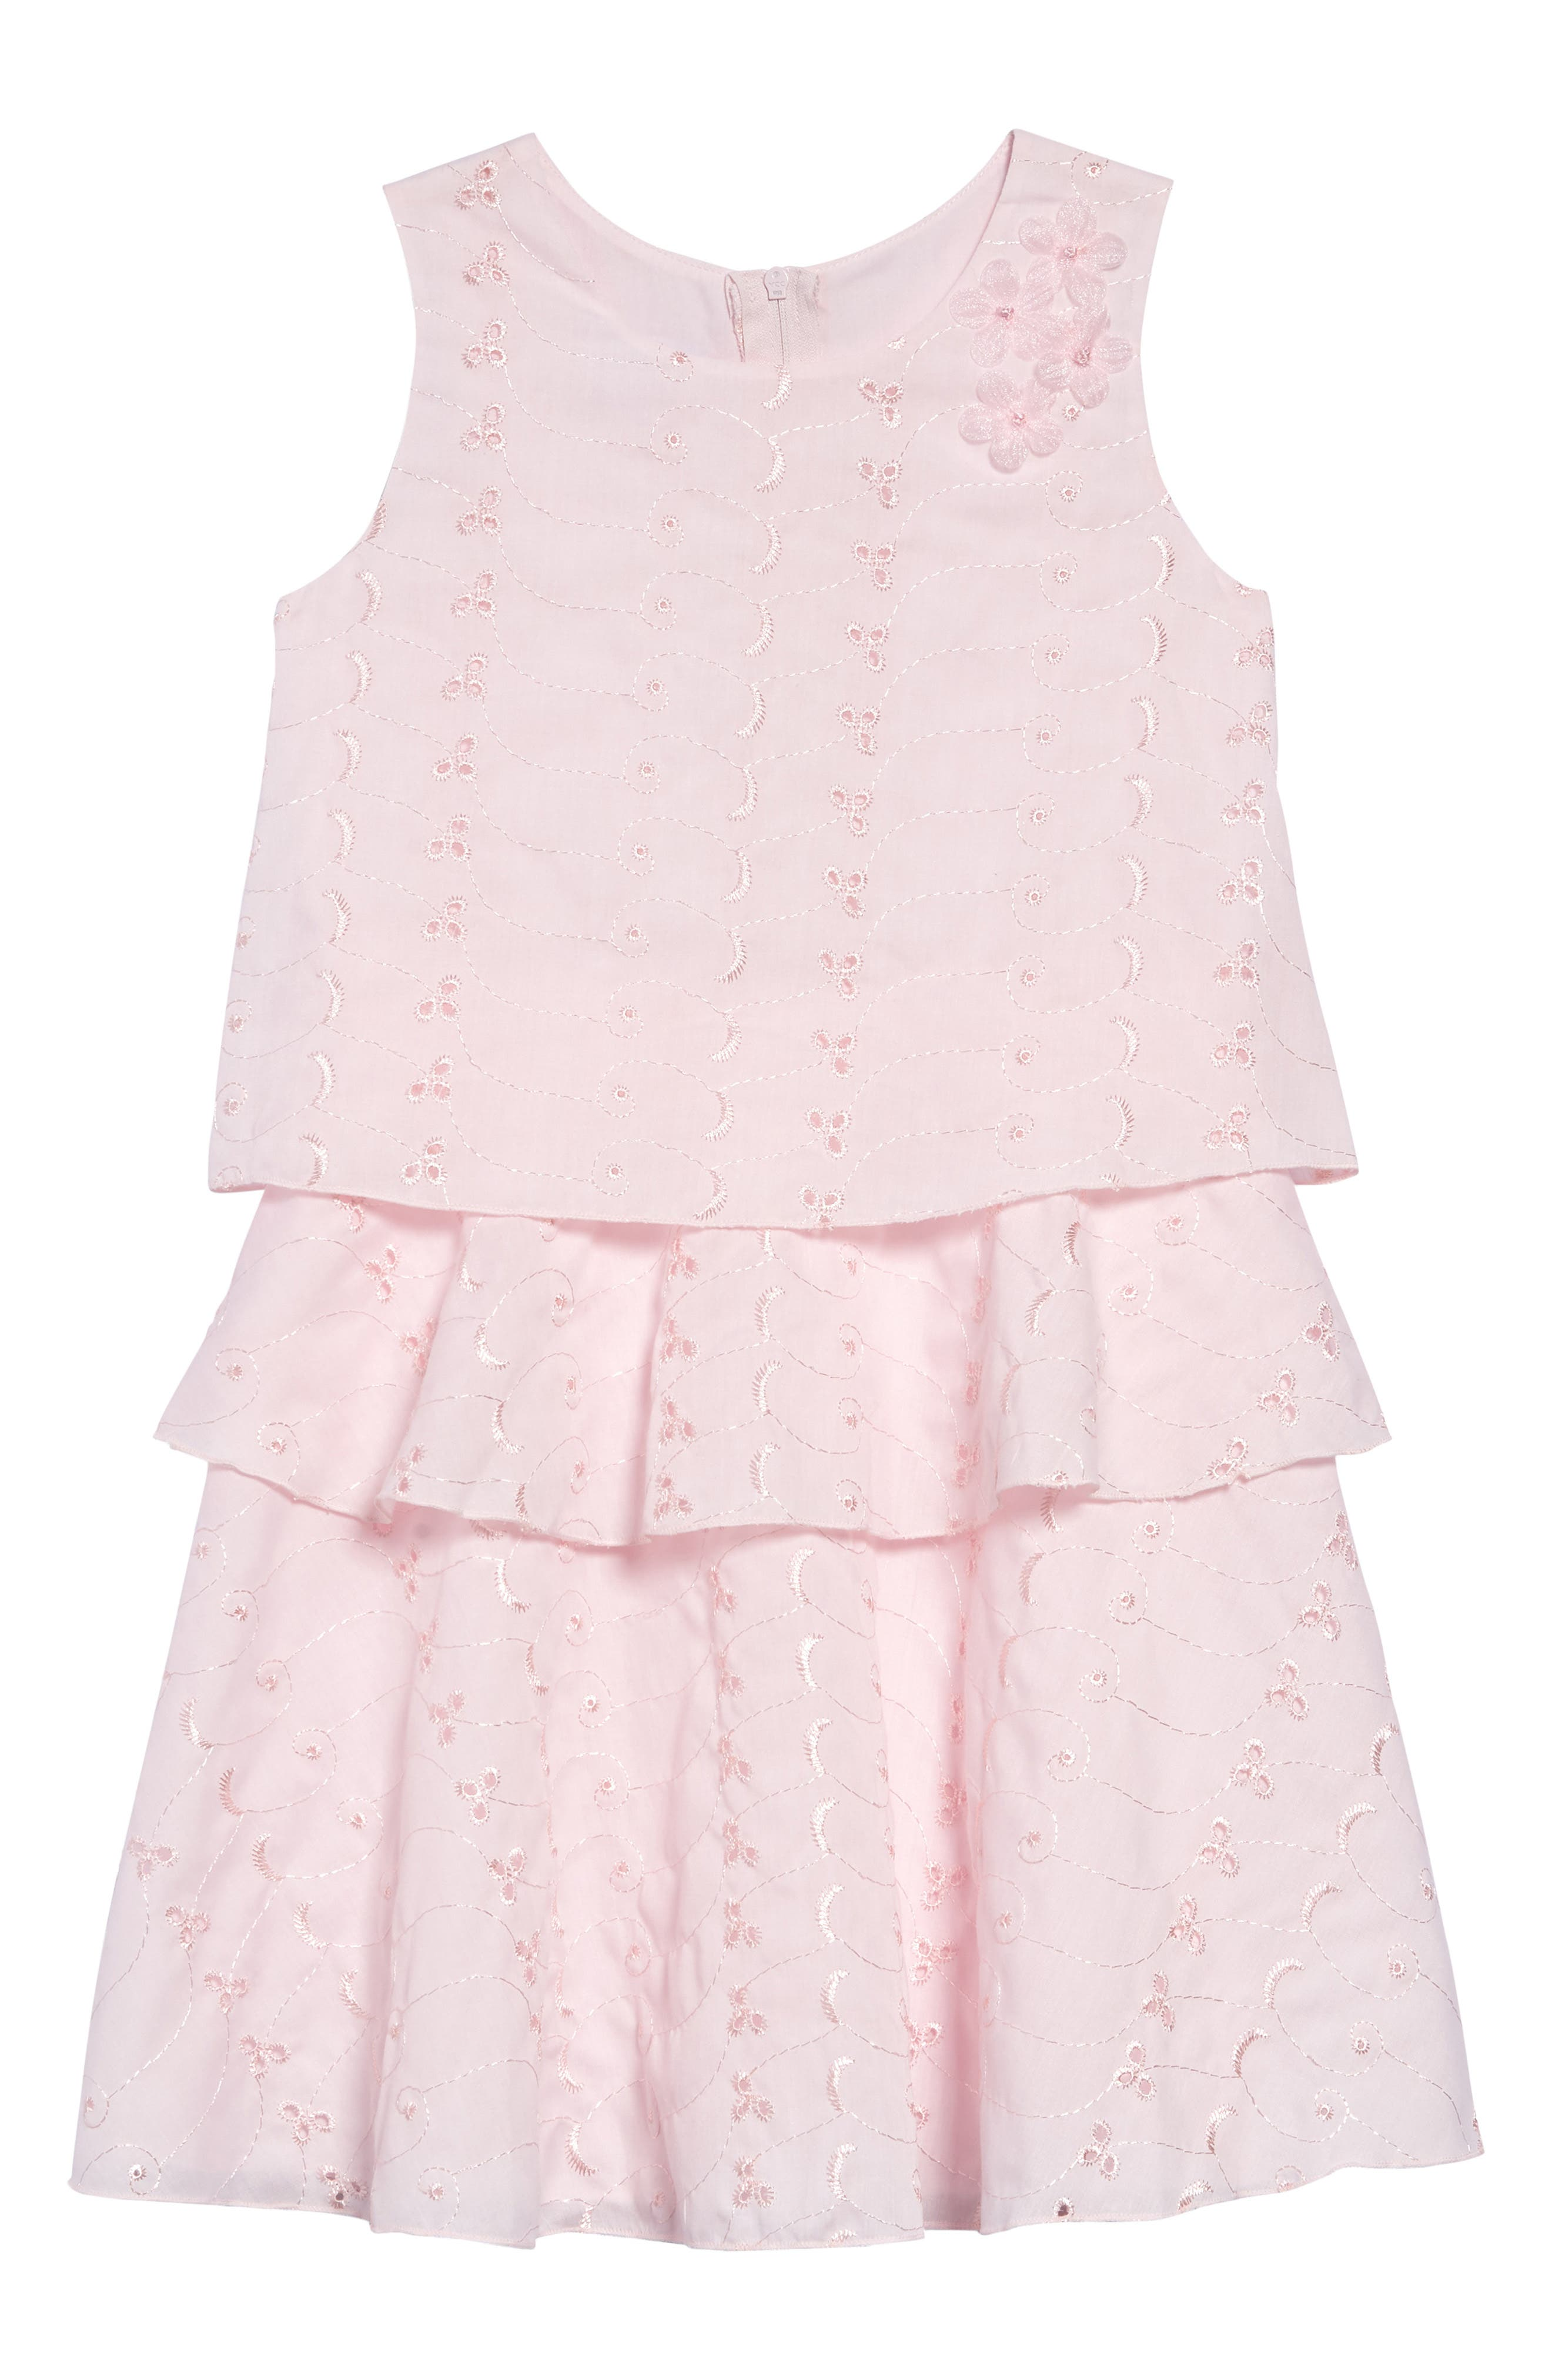 Toddler Girls Frais Tiered Eyelet Embroidered Dress Size 2T  Pink